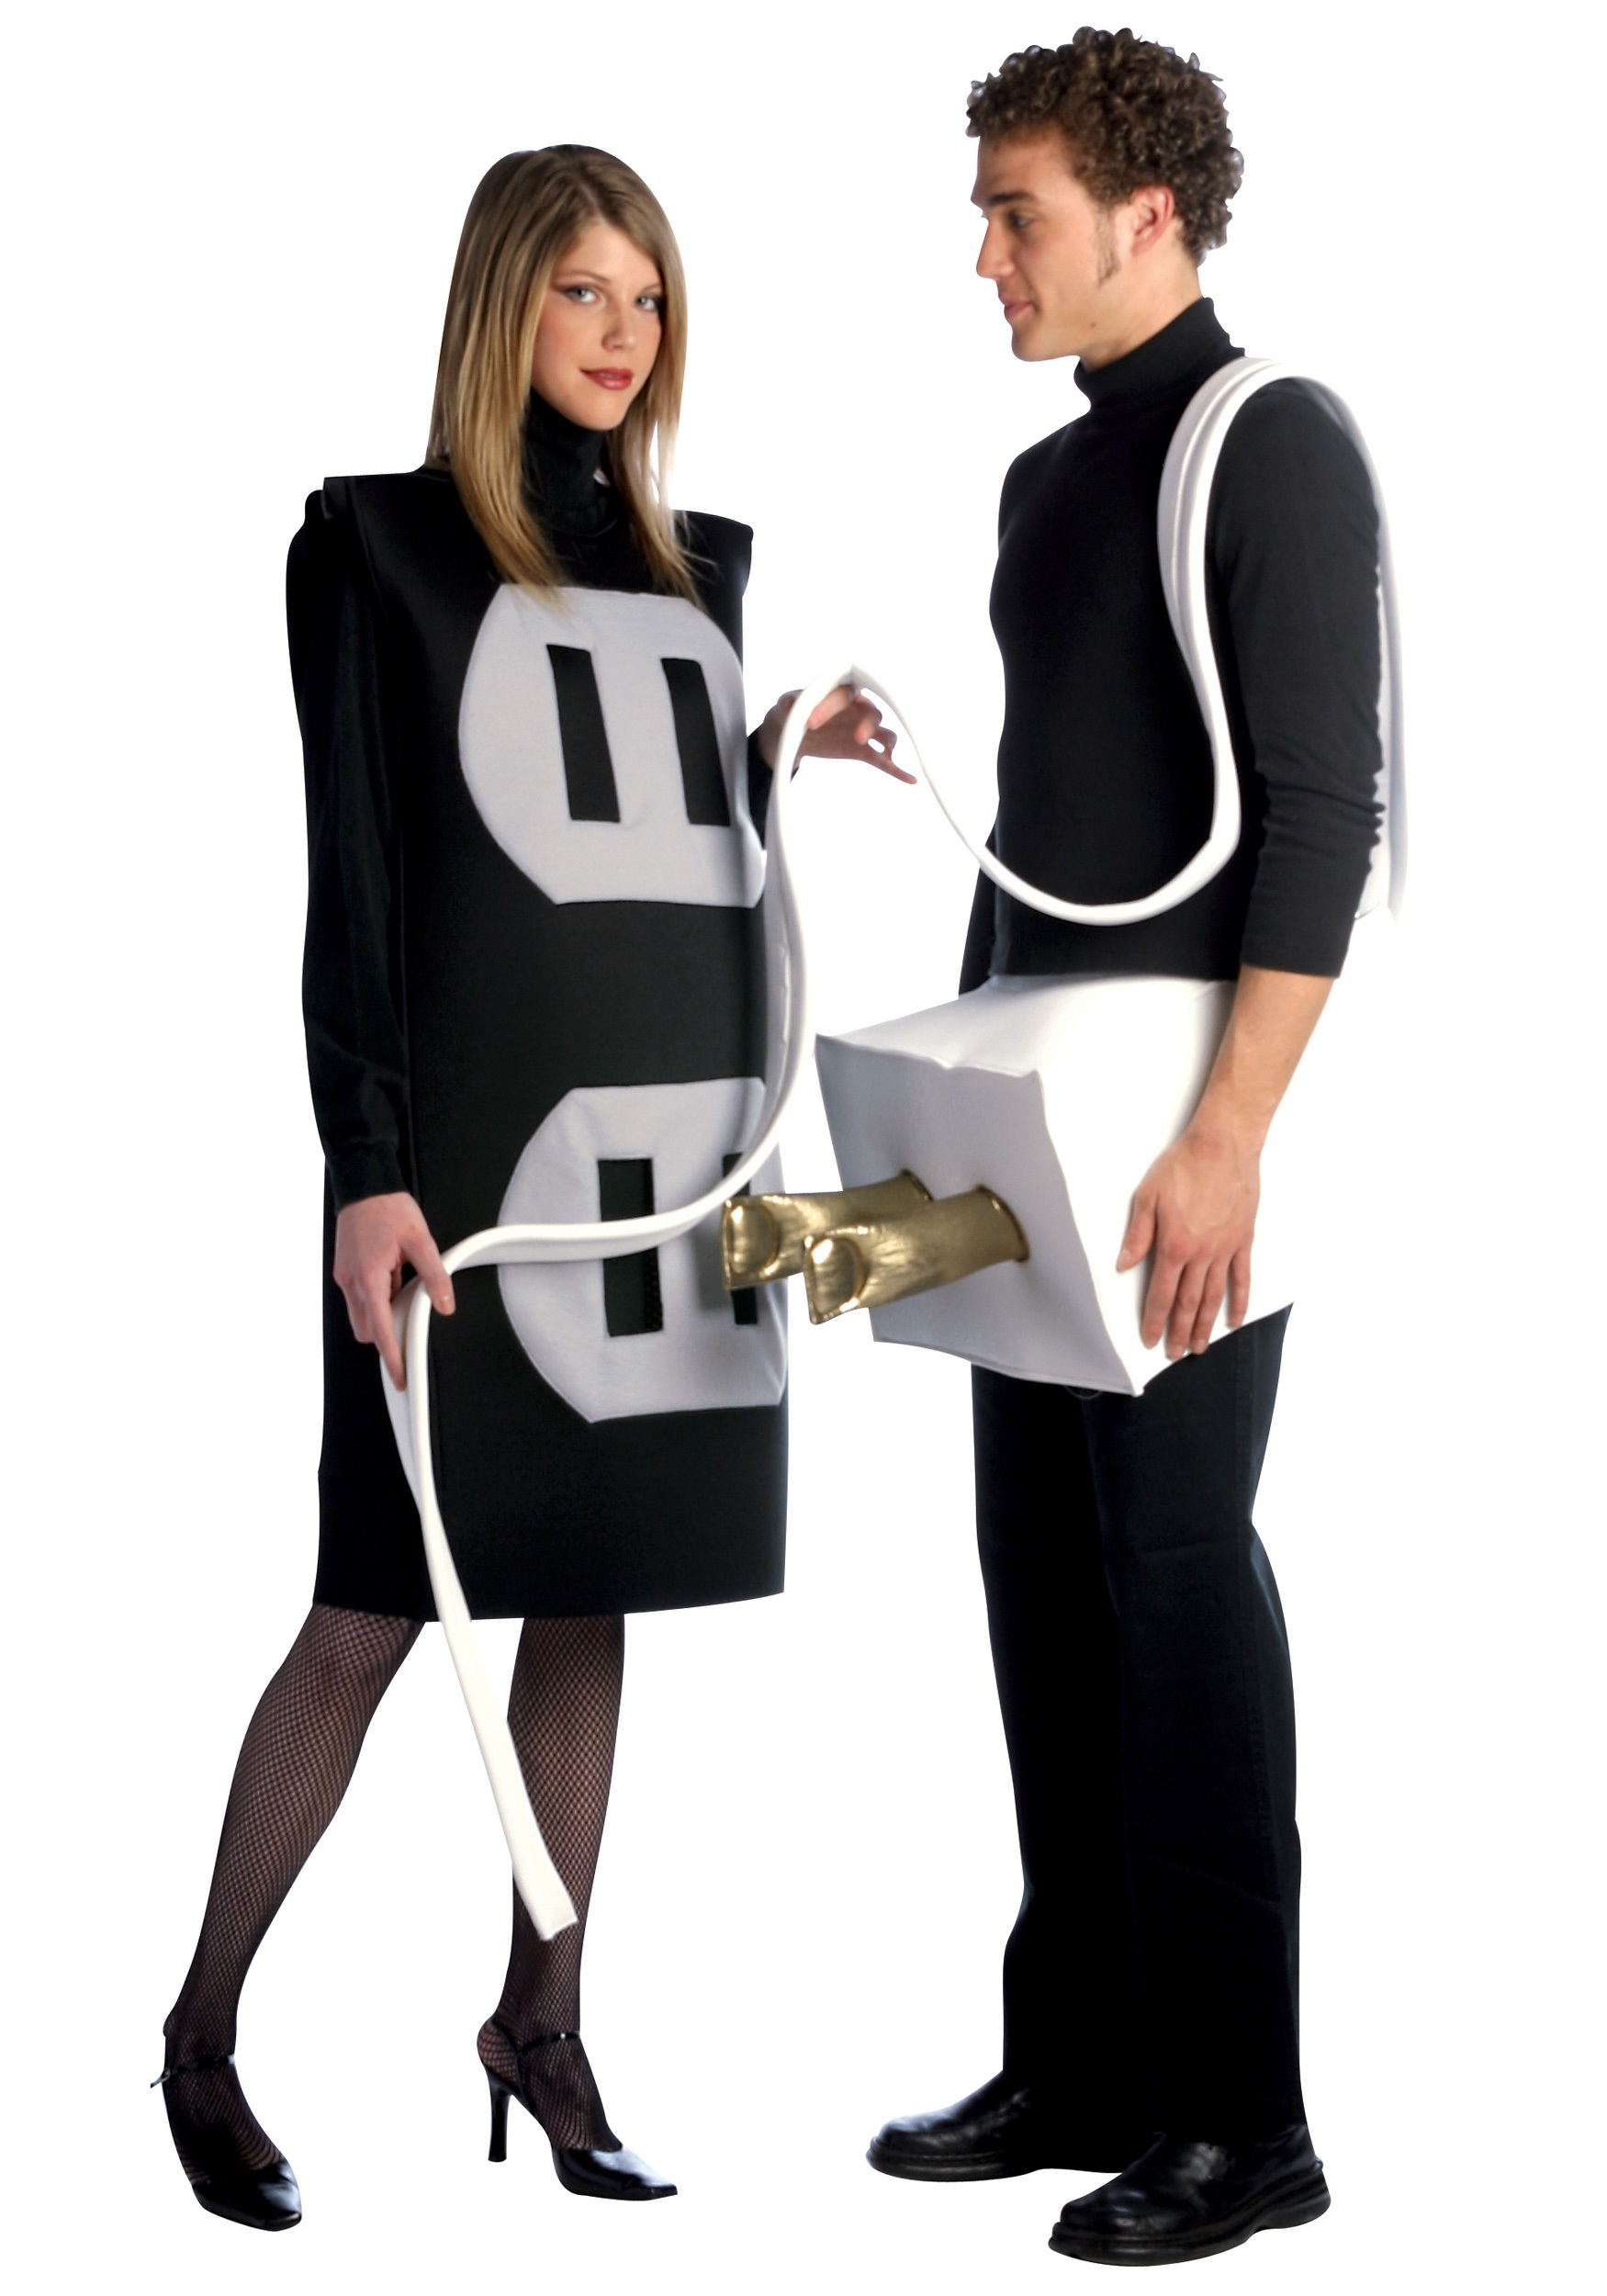 Plug and Socket Costume  sc 1 st  Halloween Costumes & Plug and Socket Costume - Funny Couples Costume Ideas